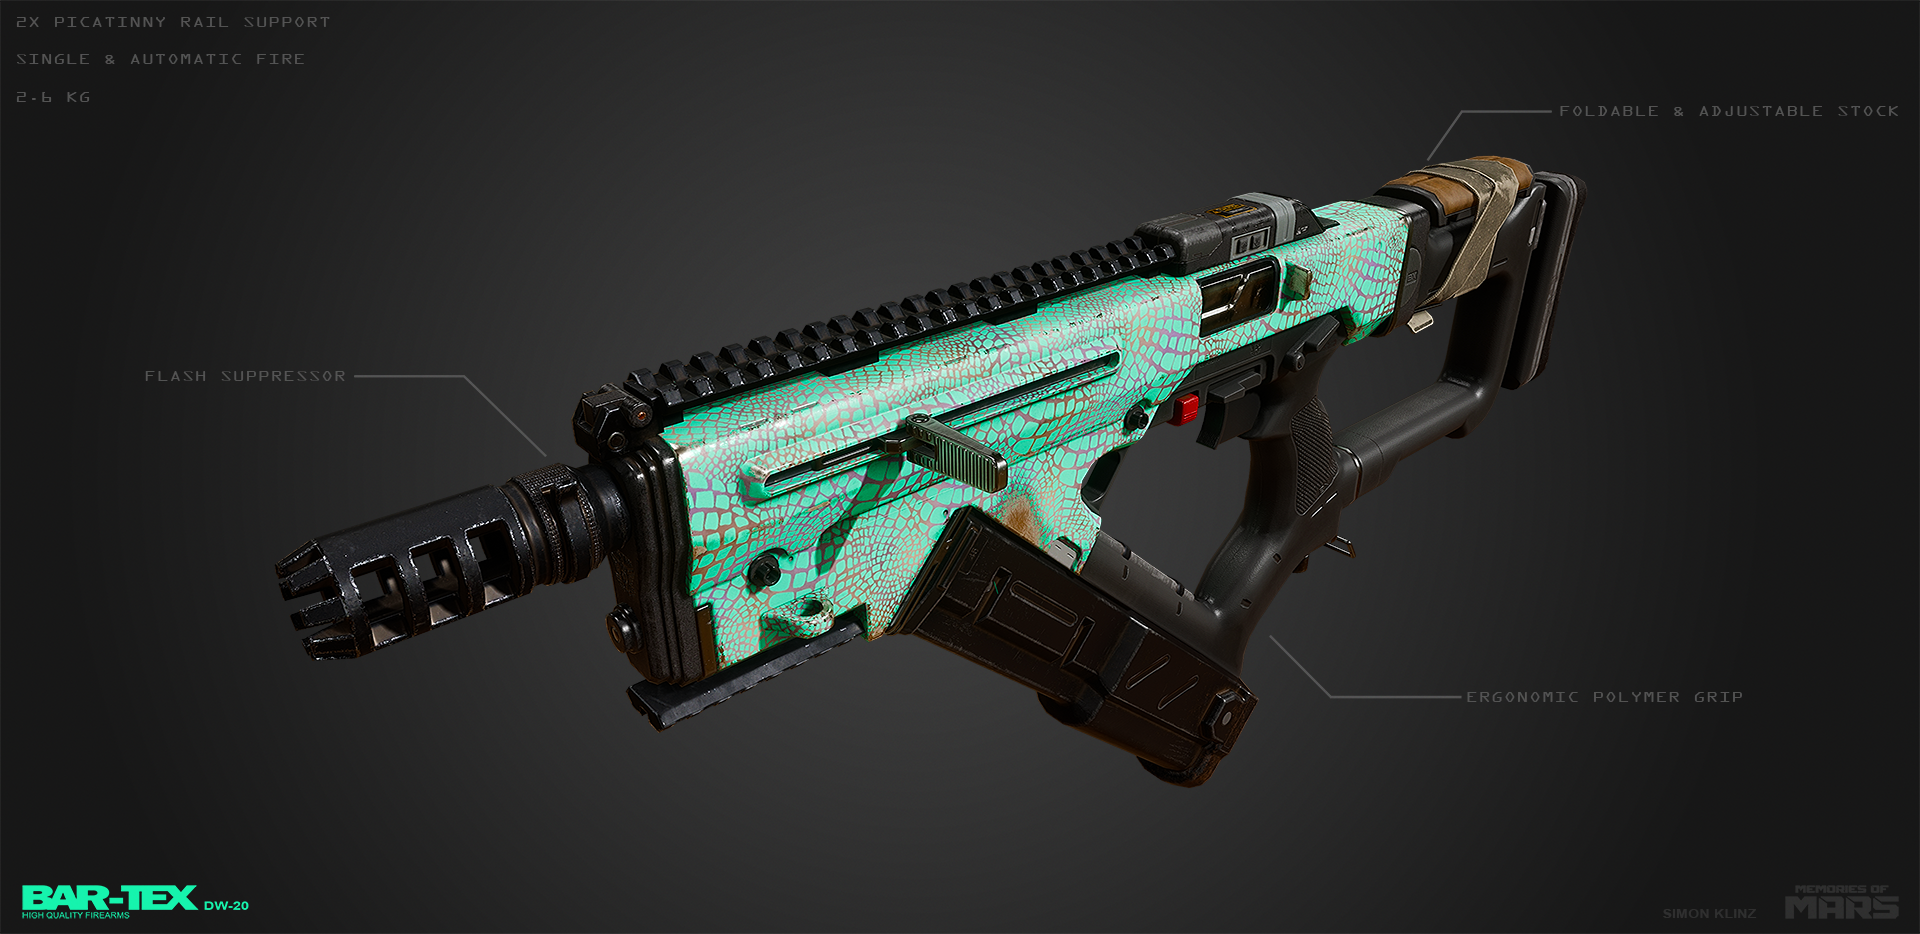 Submachine gun design for Memories of Mars. First person ingame model with extended barrel and magazine.